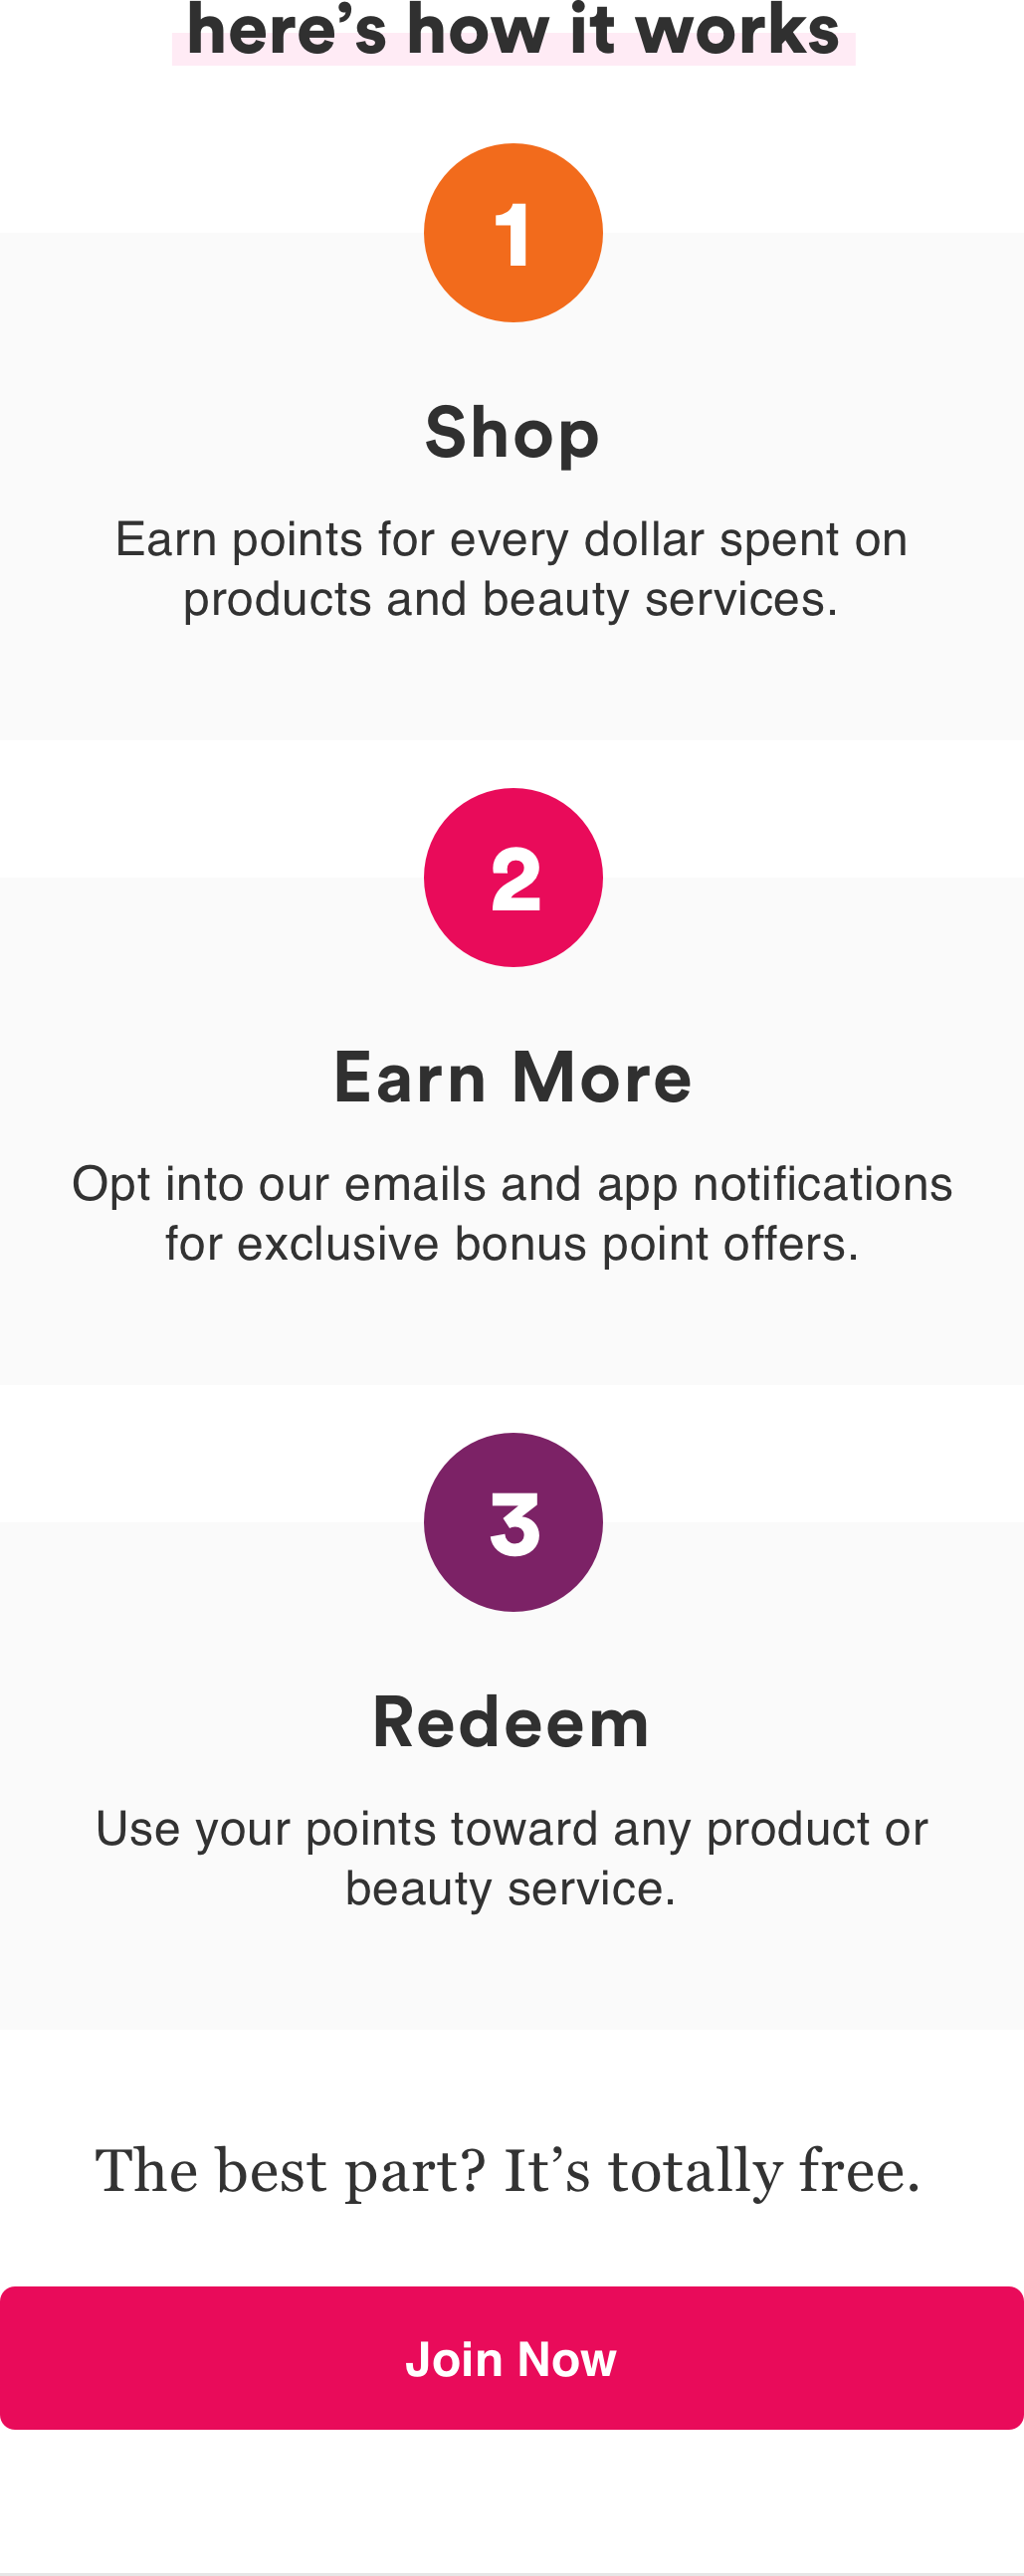 Shop and earn points on products and beauty services. Redeem on any product.